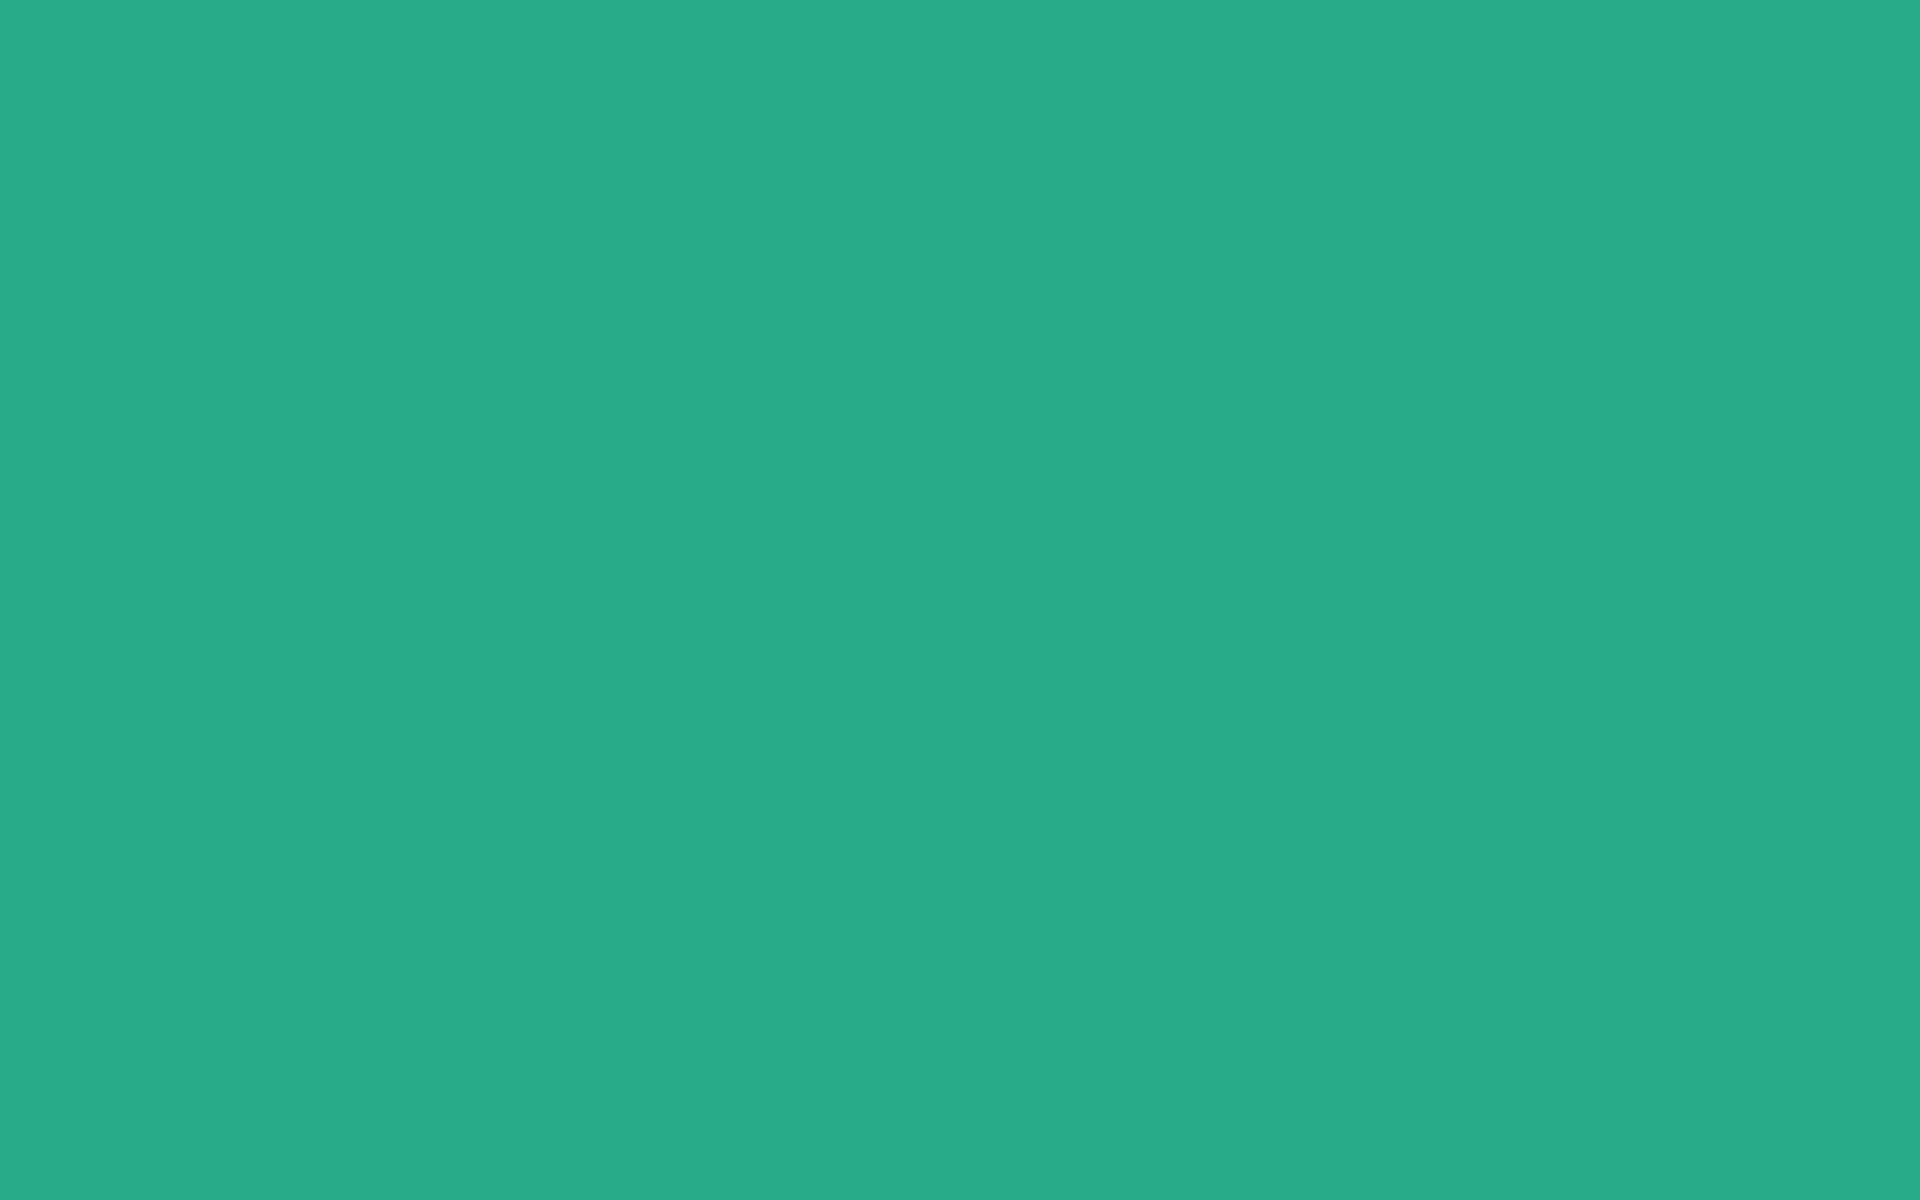 1920x1200 Jungle Green Solid Color Background